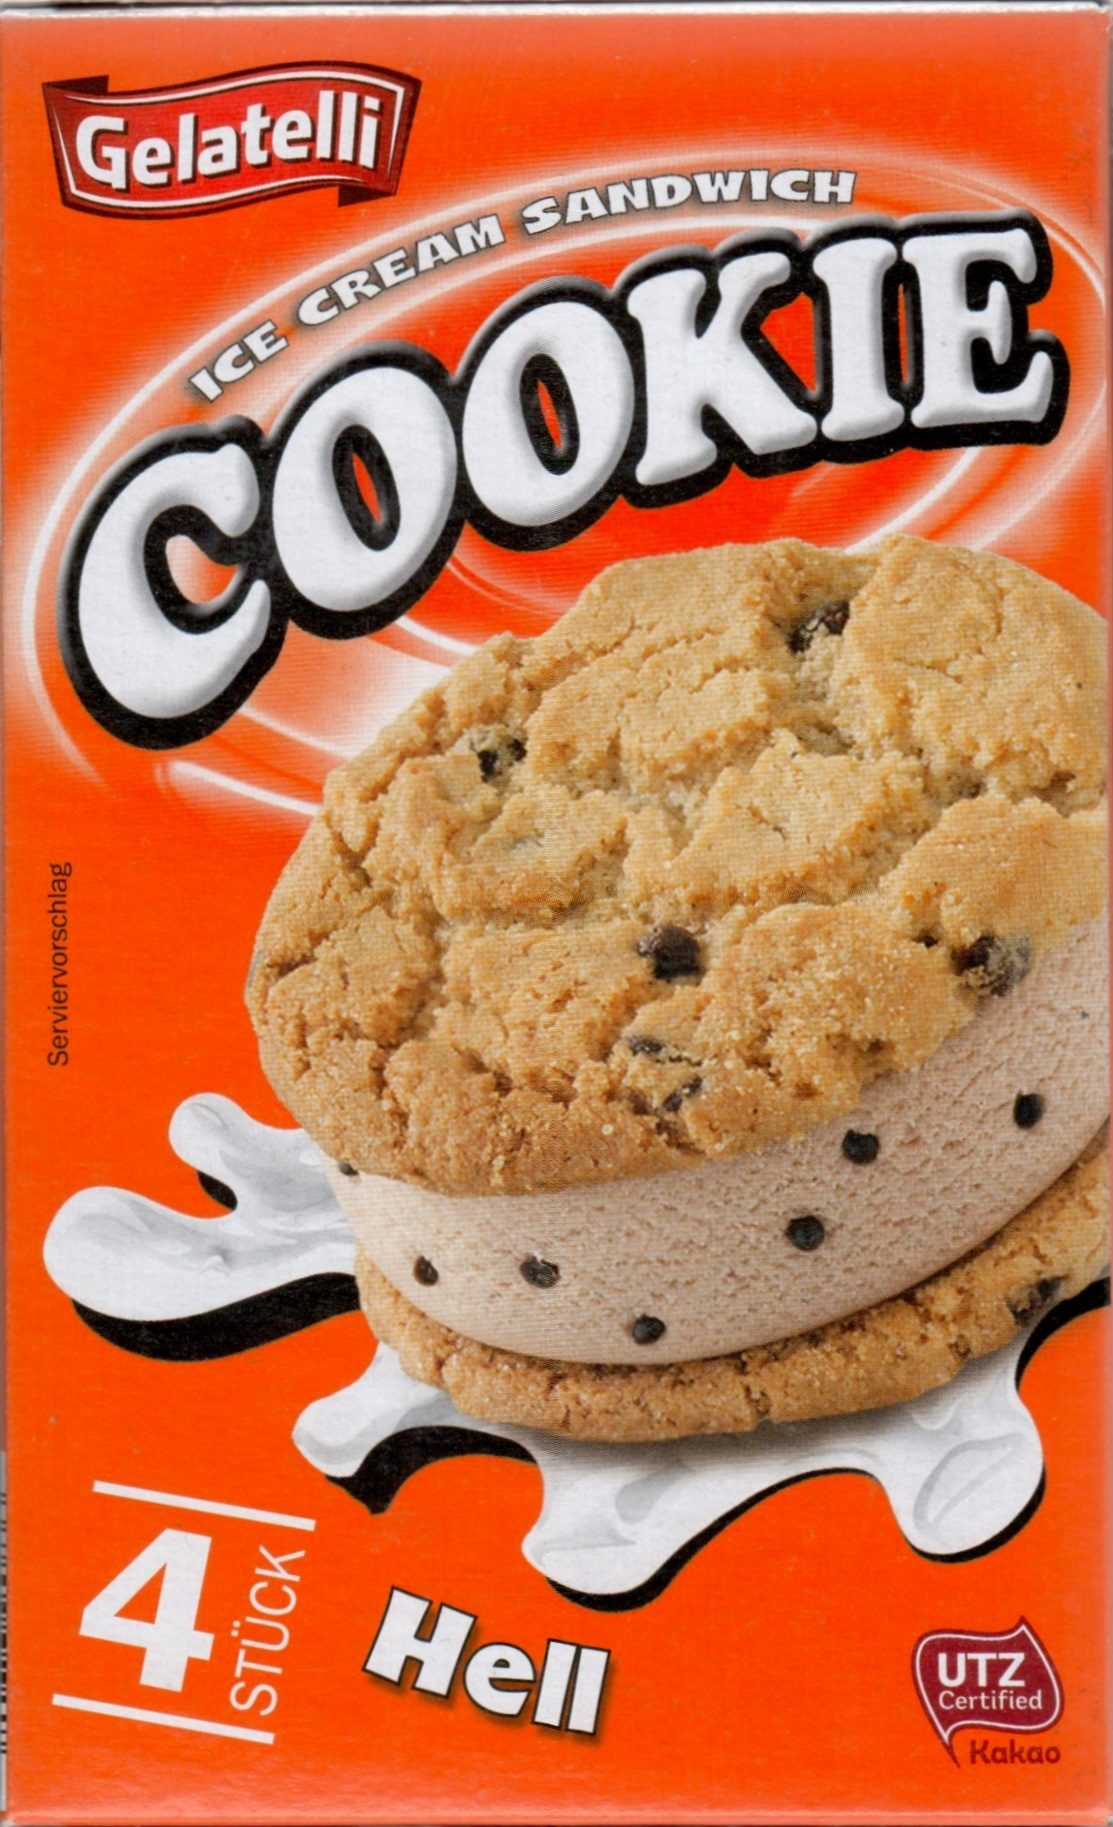 Ice cream sandwich cookie dark chocolate chips - Produkt - de